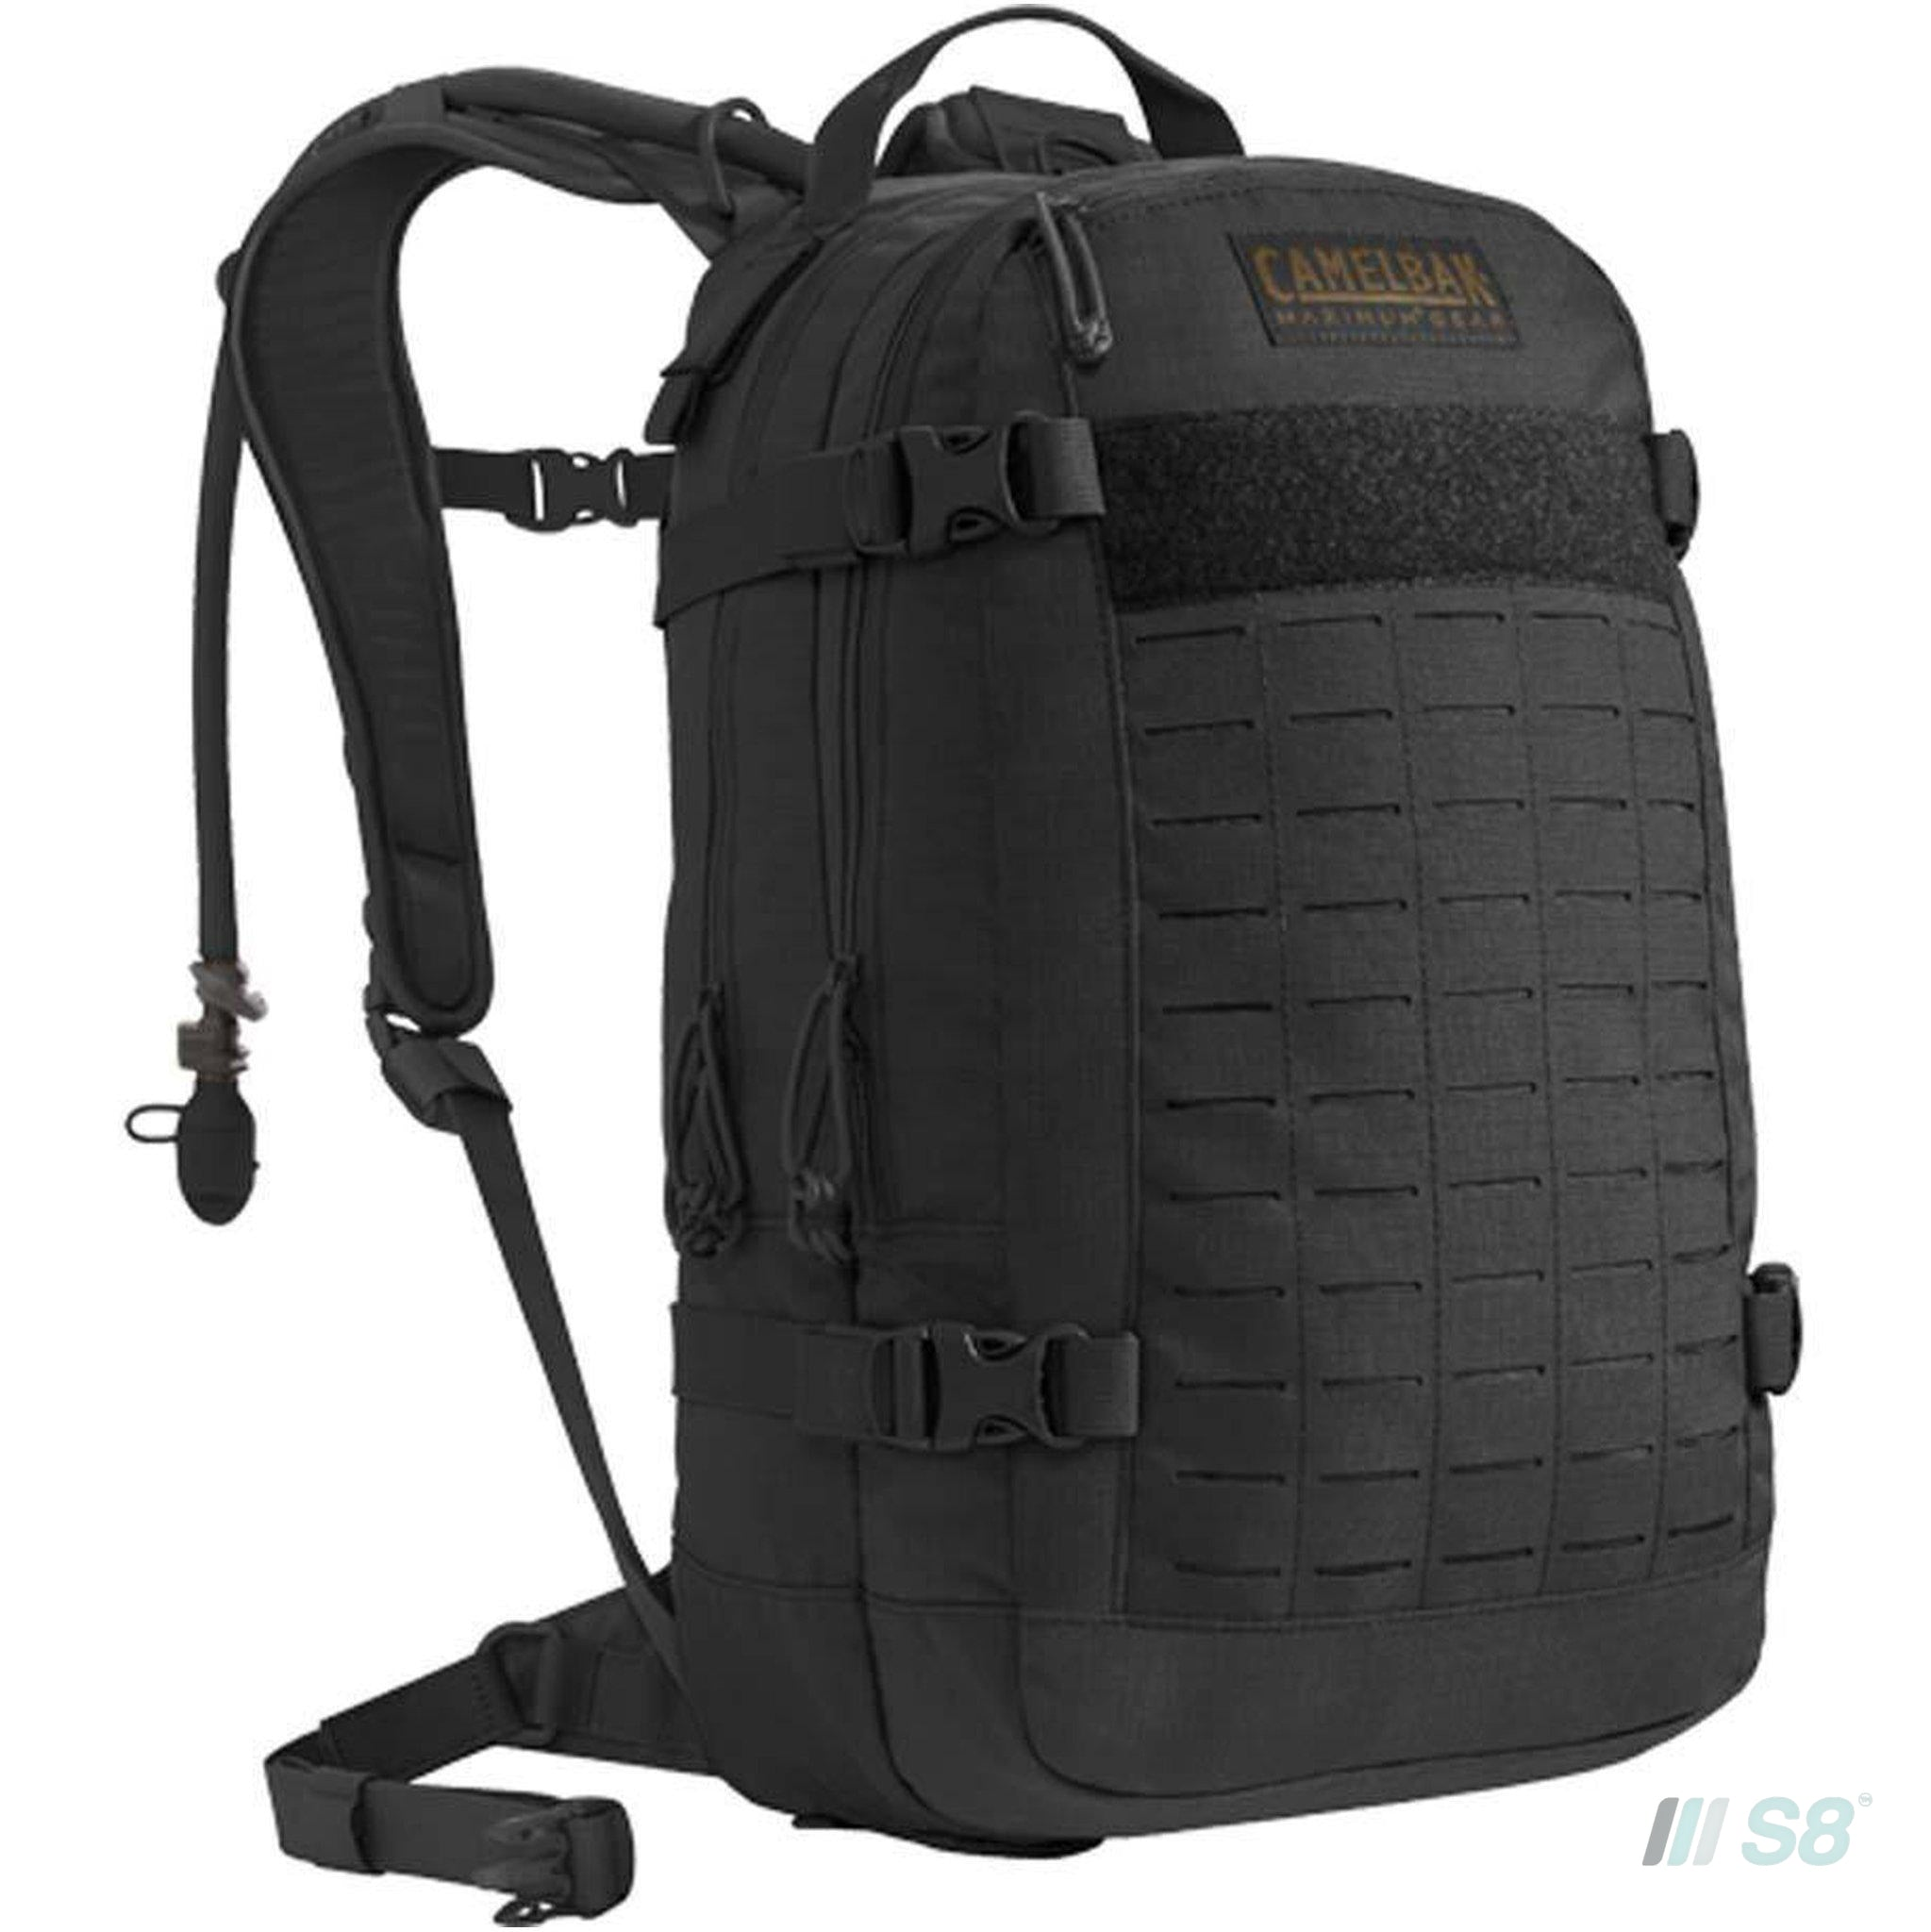 Camelbak Hawg 3L Military Hydration Backpack-Camelbak-S8 Products Group